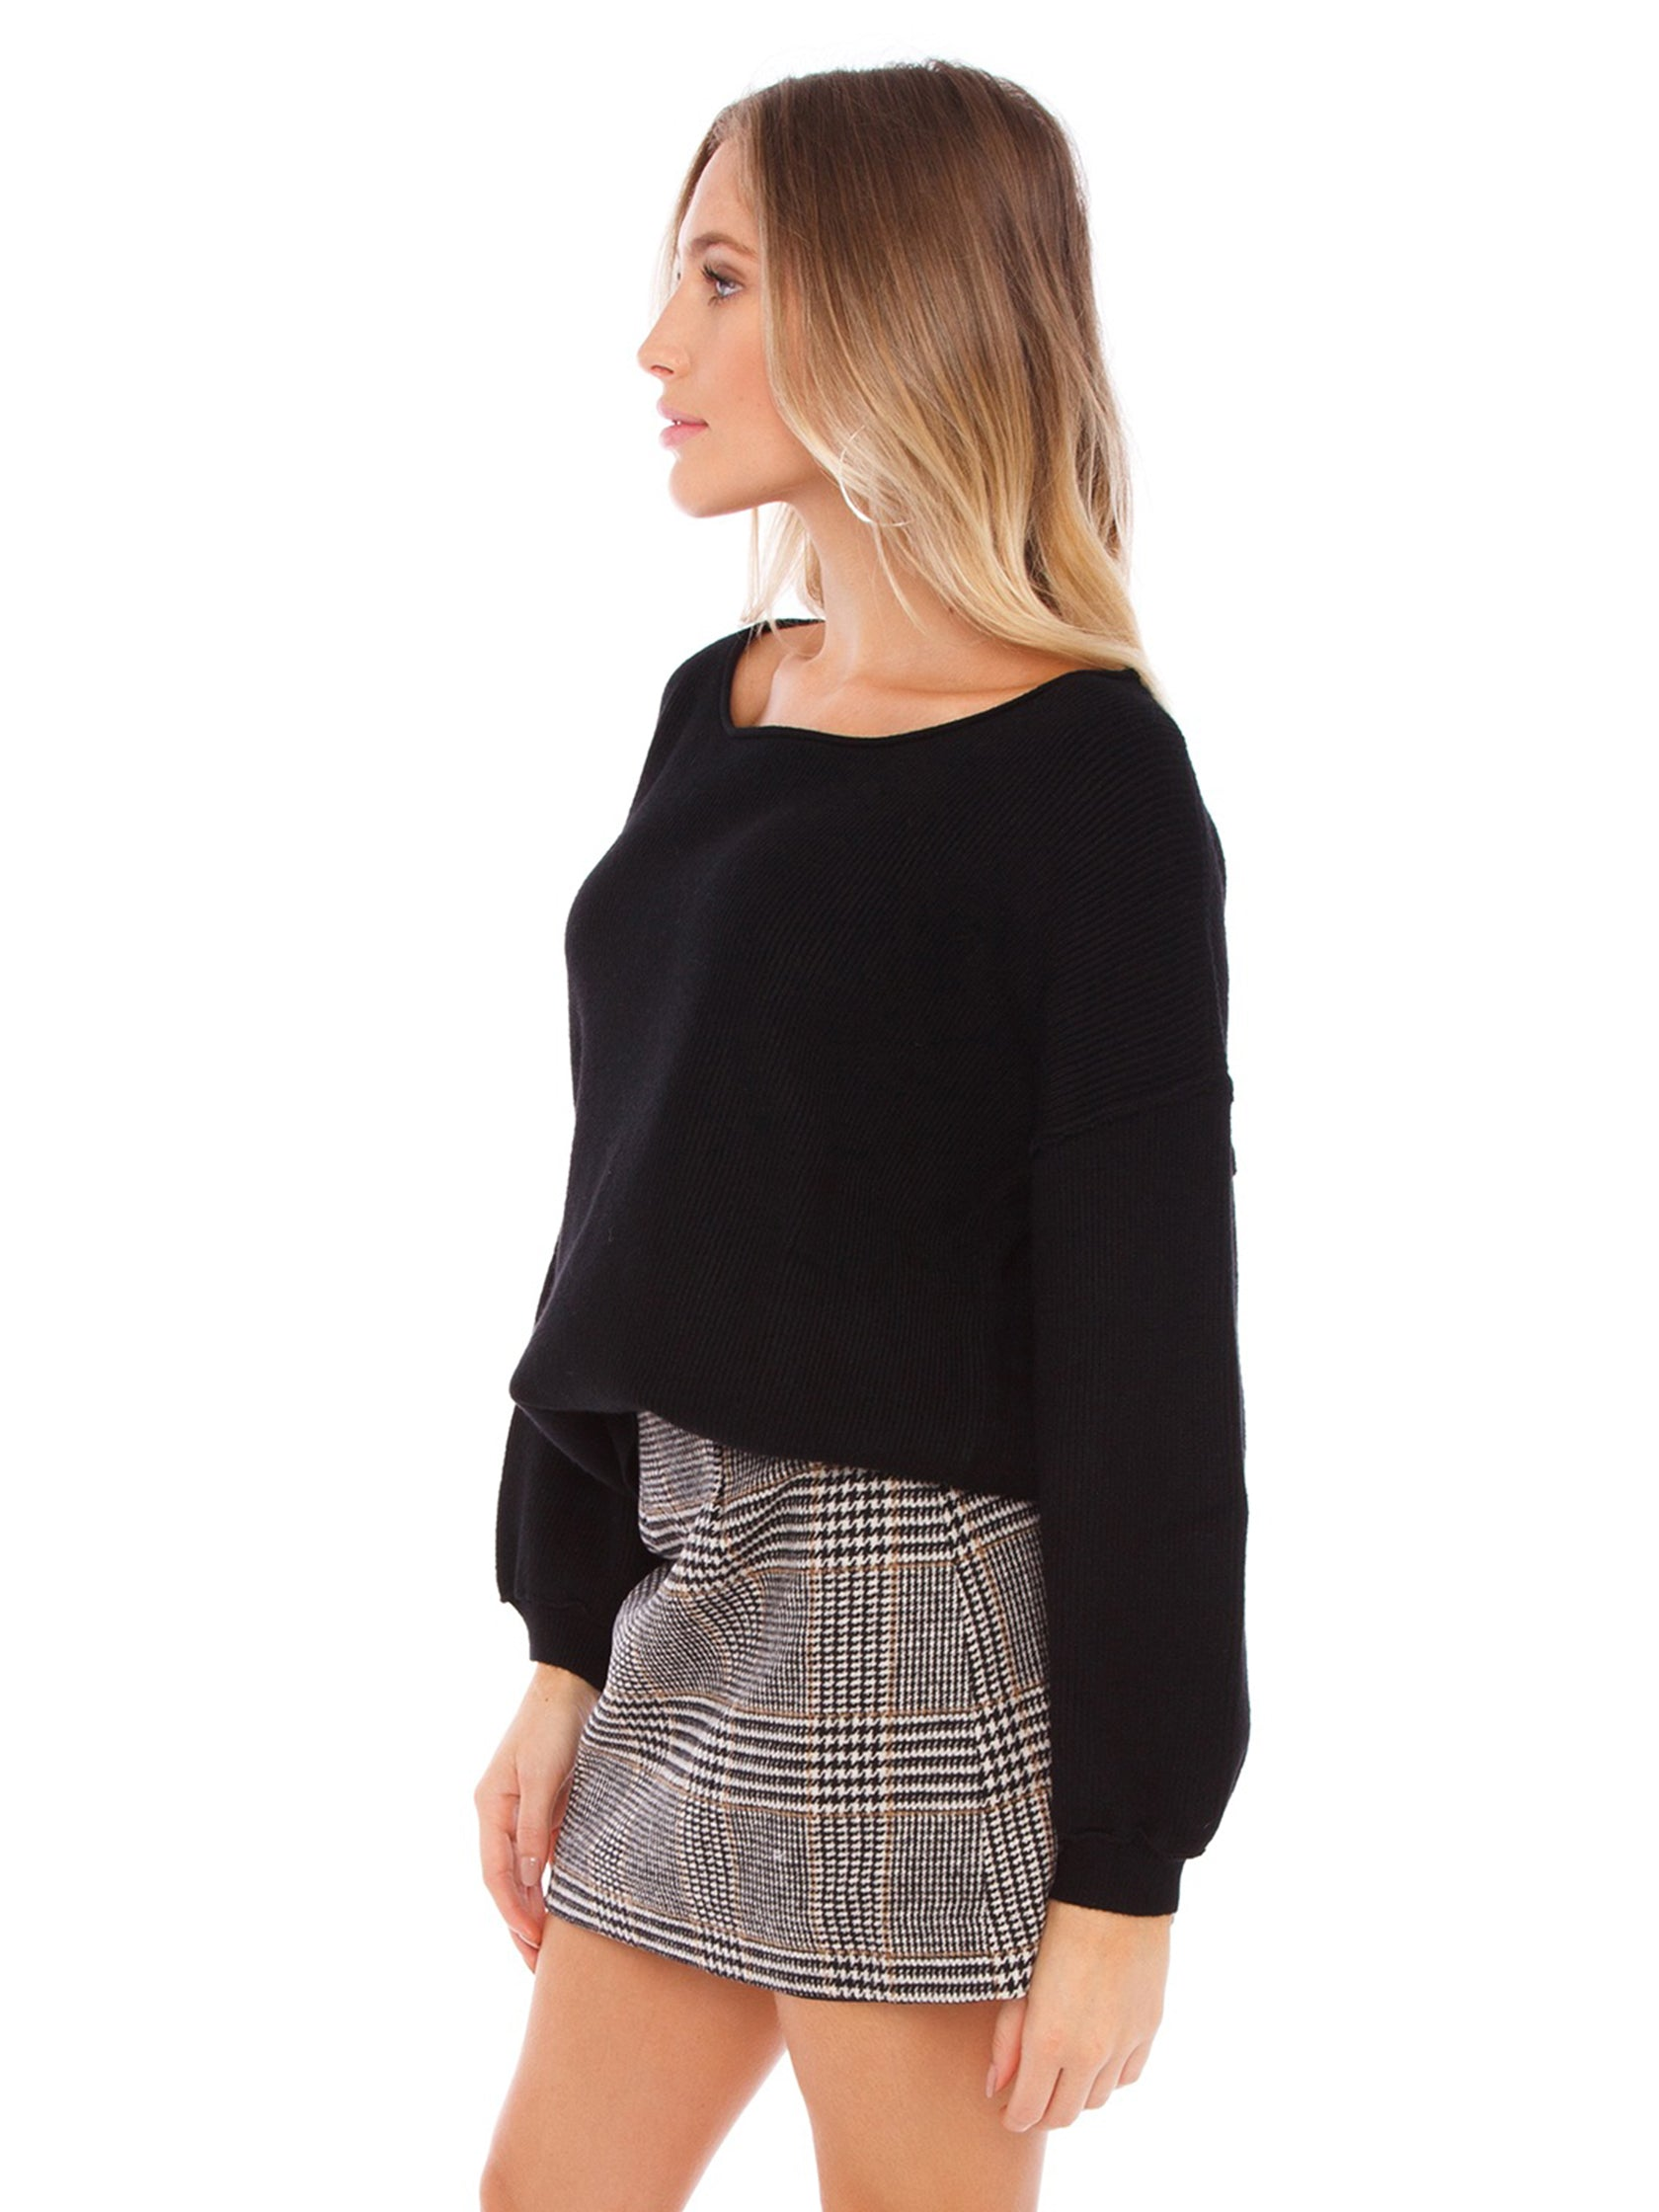 Women wearing a sweater rental from FashionPass called Cece Sweater